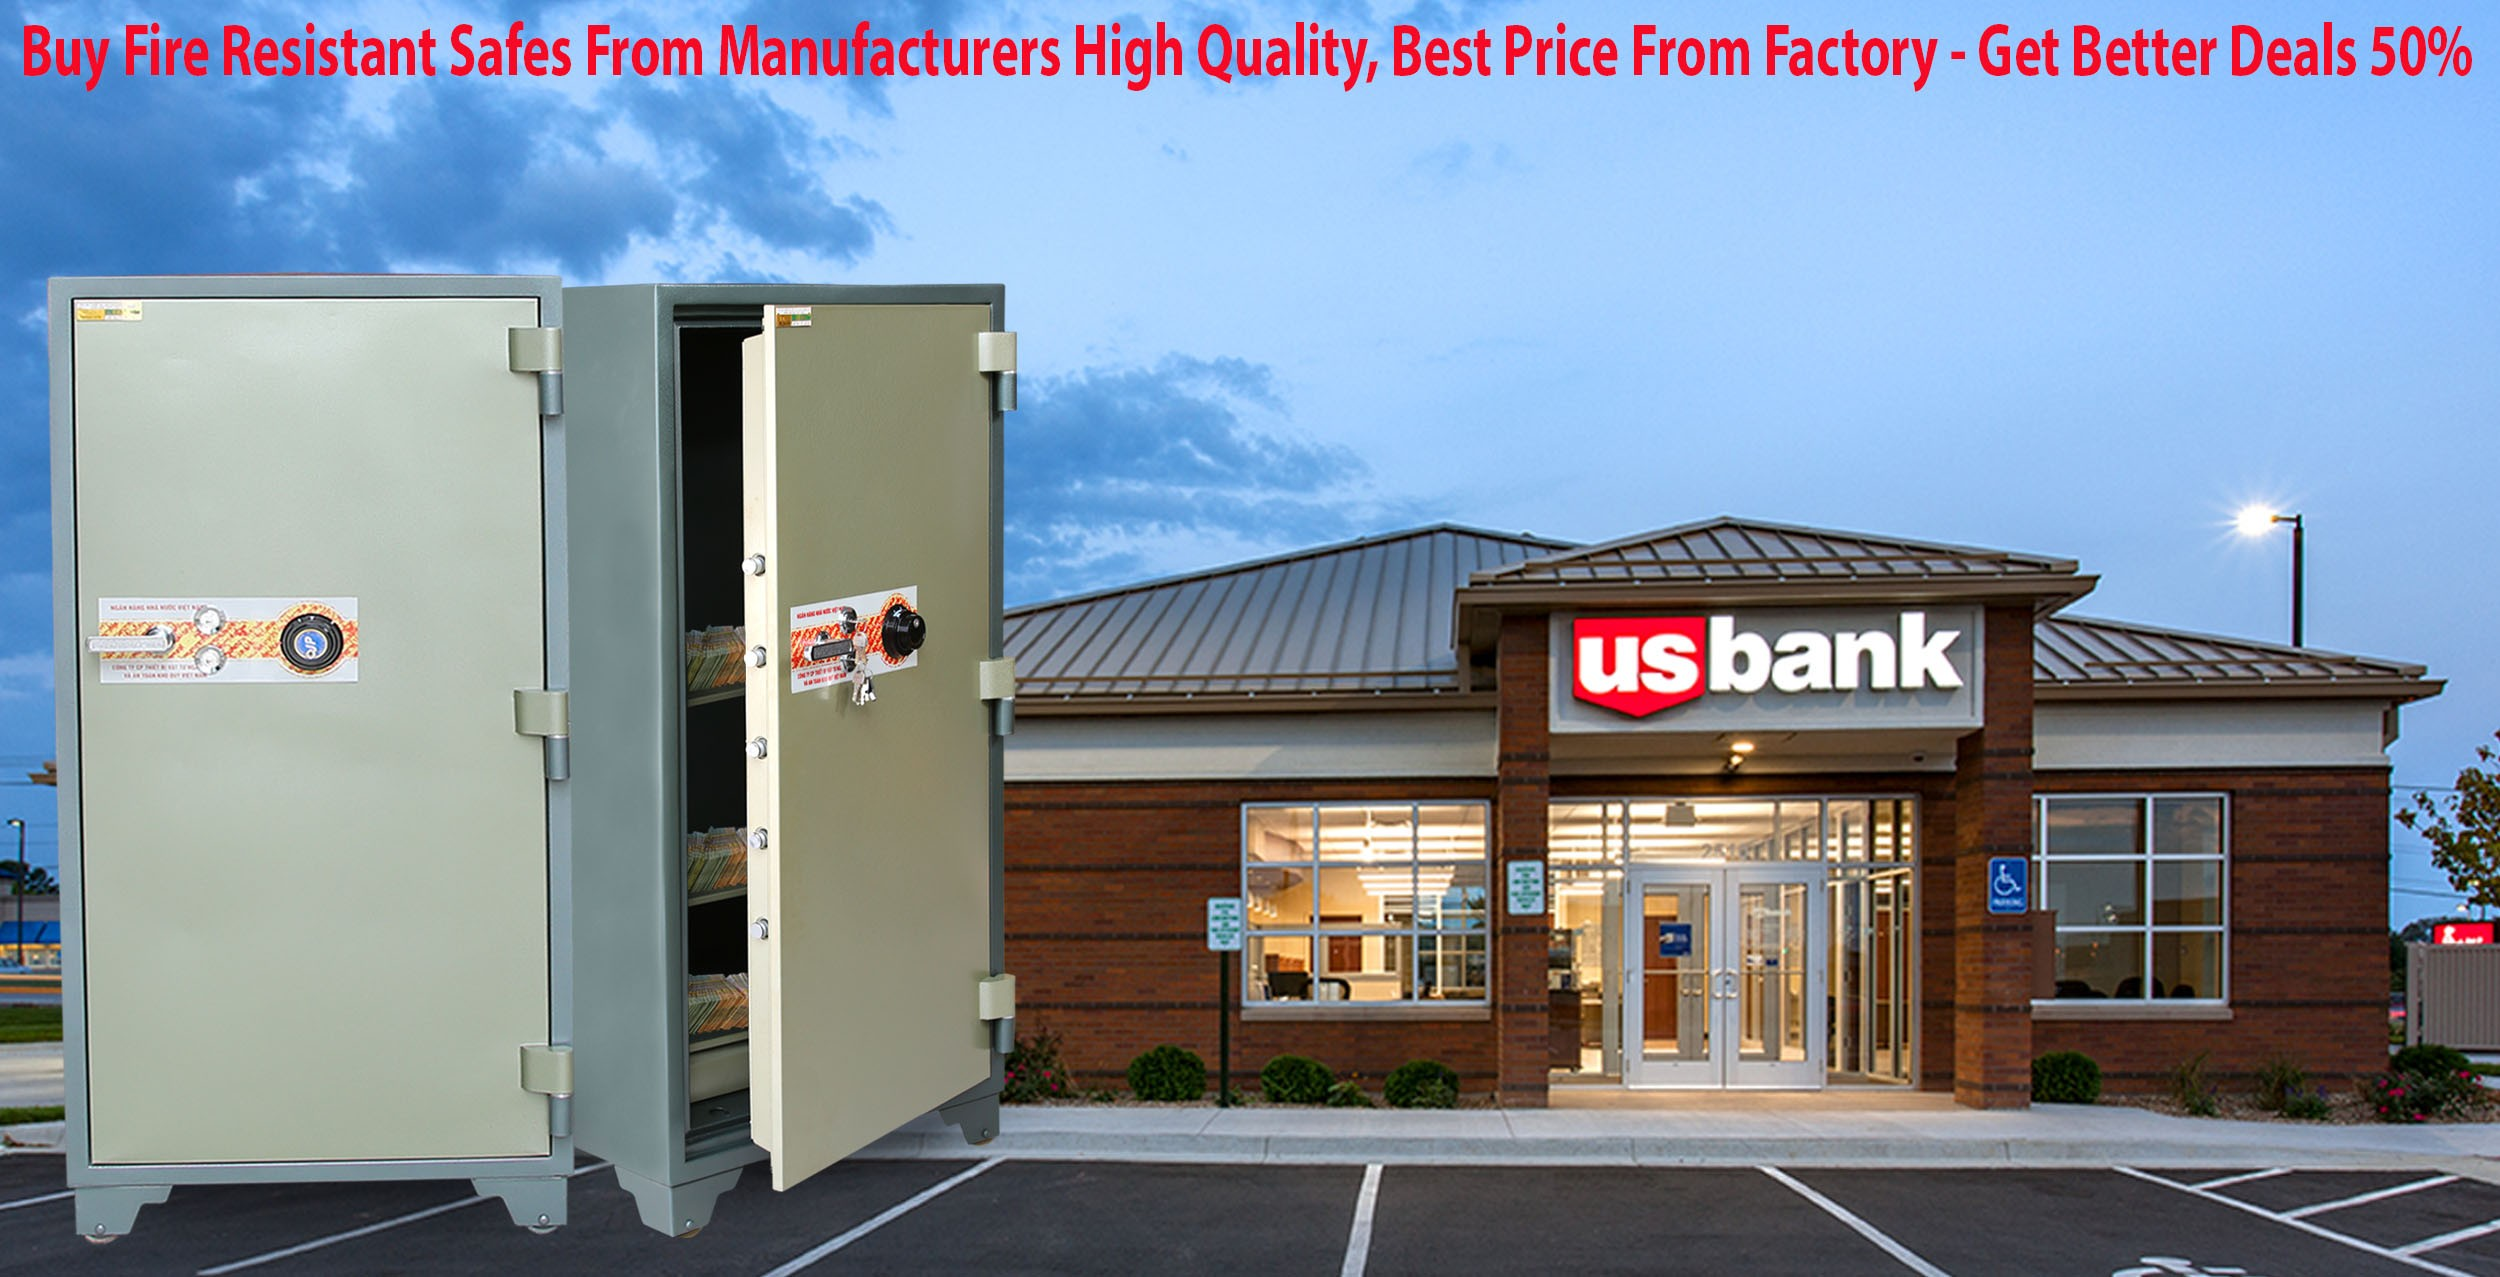 Bank Safes Factory Direct & Fast Shipping